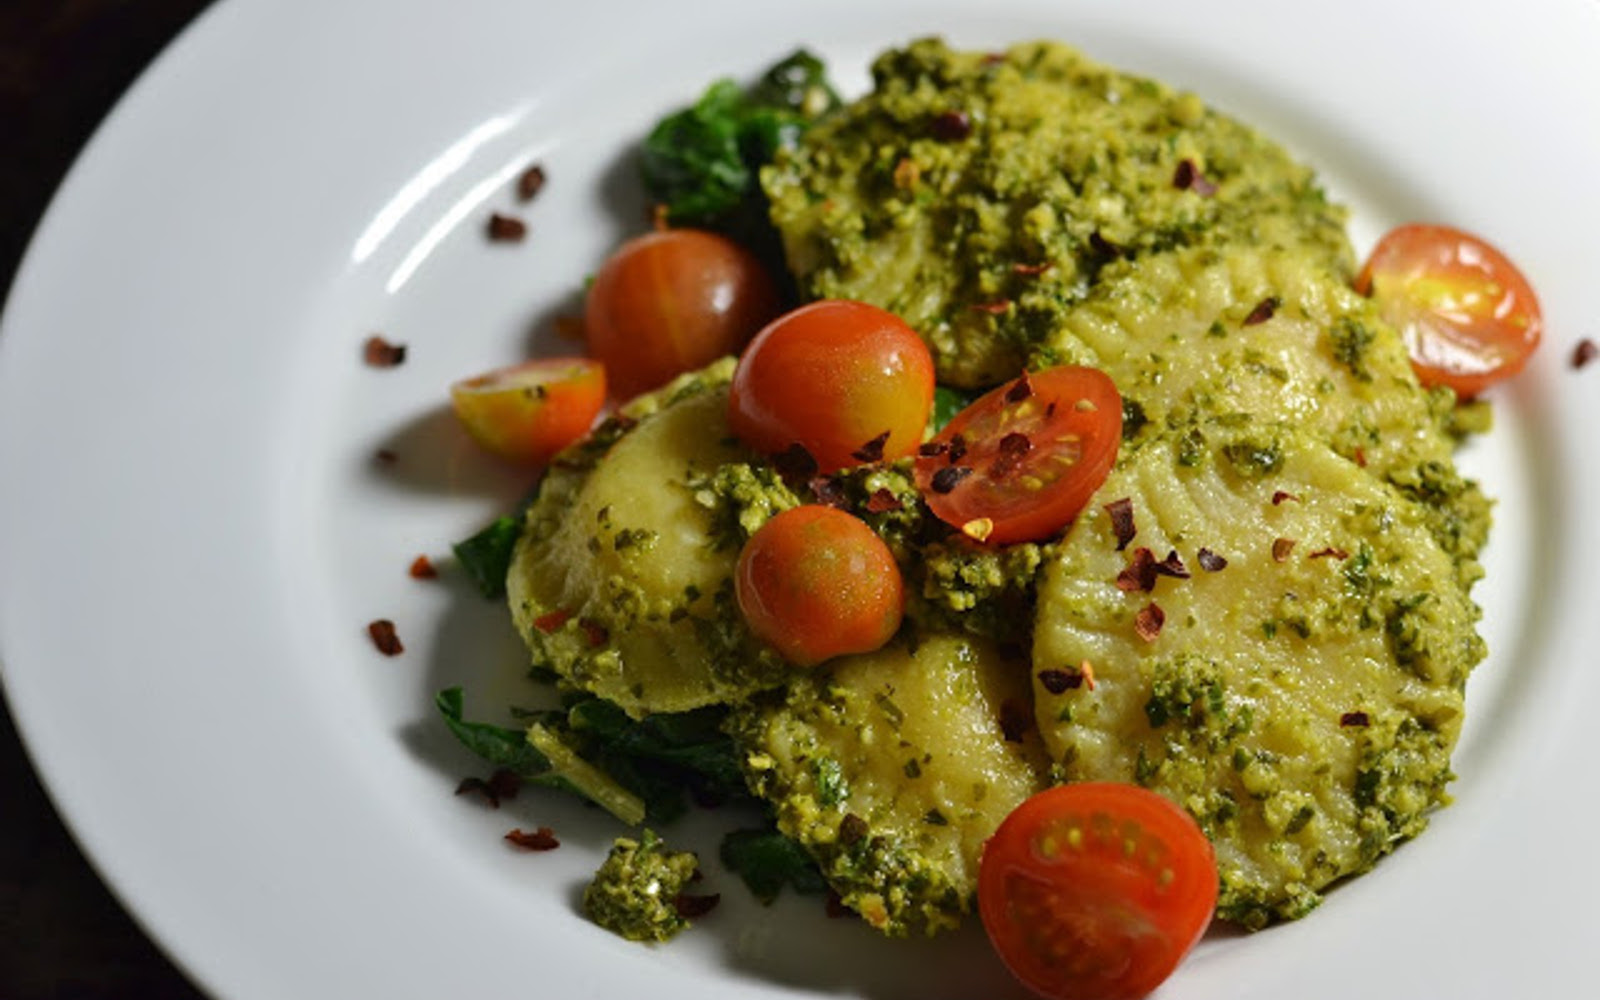 Vegan Ravioli With Kale Pesto And Sautéed Chard and fresh tomatoes